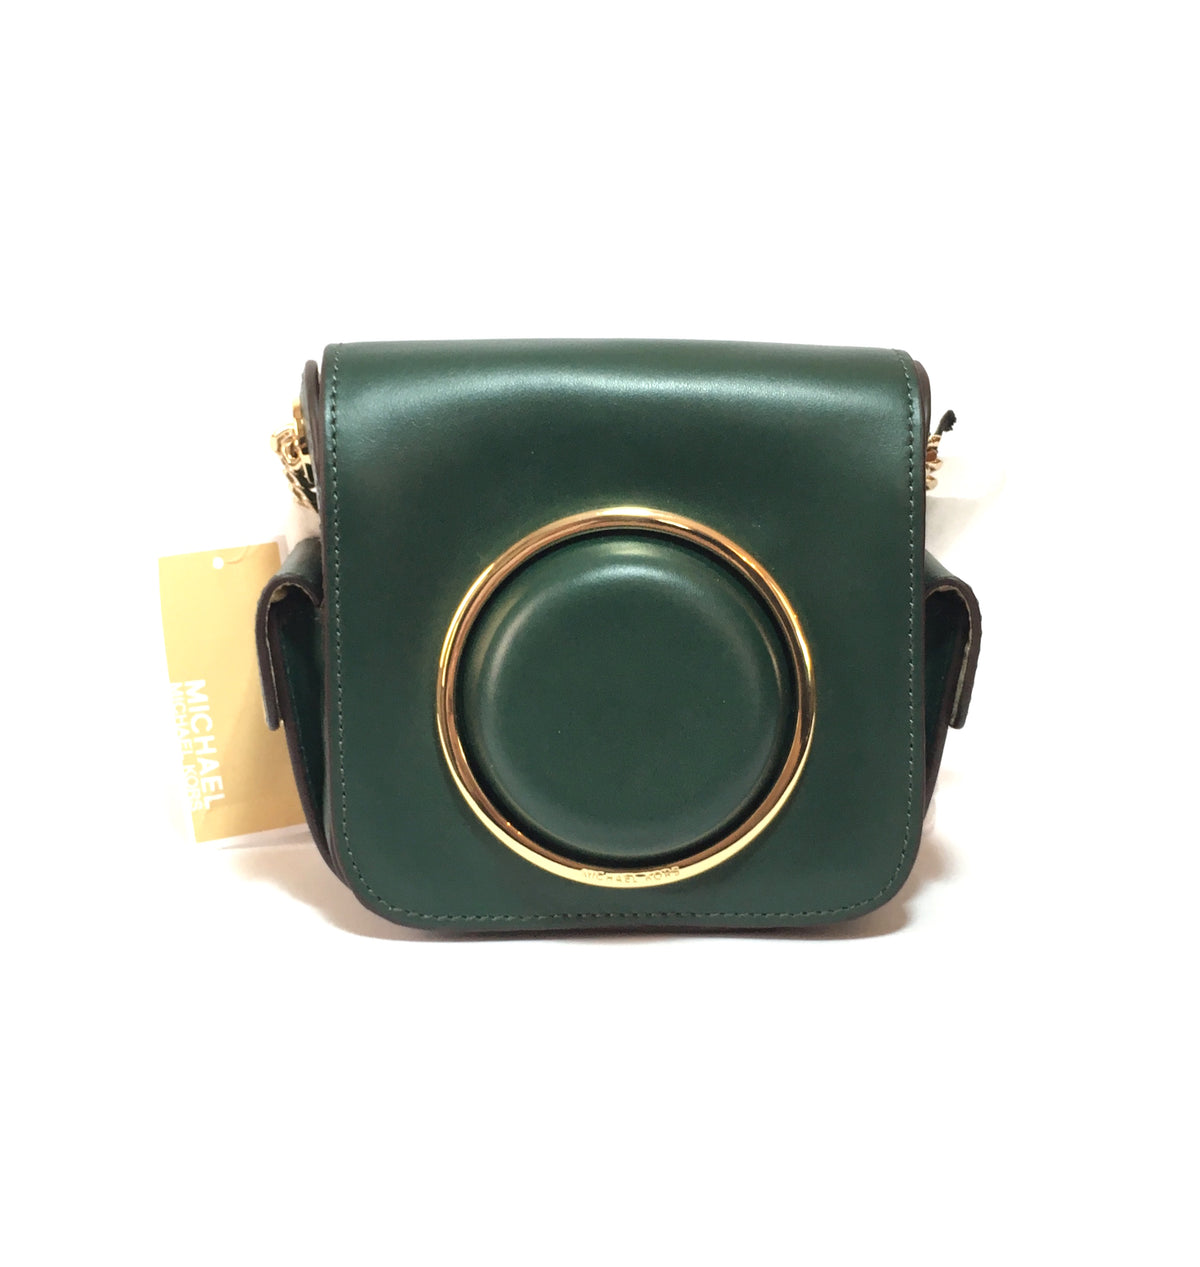 4d3049a57edf Michael Kors 'Scout Collection MD Moulded Camera' Leather Cross Body B |  Secret Stash